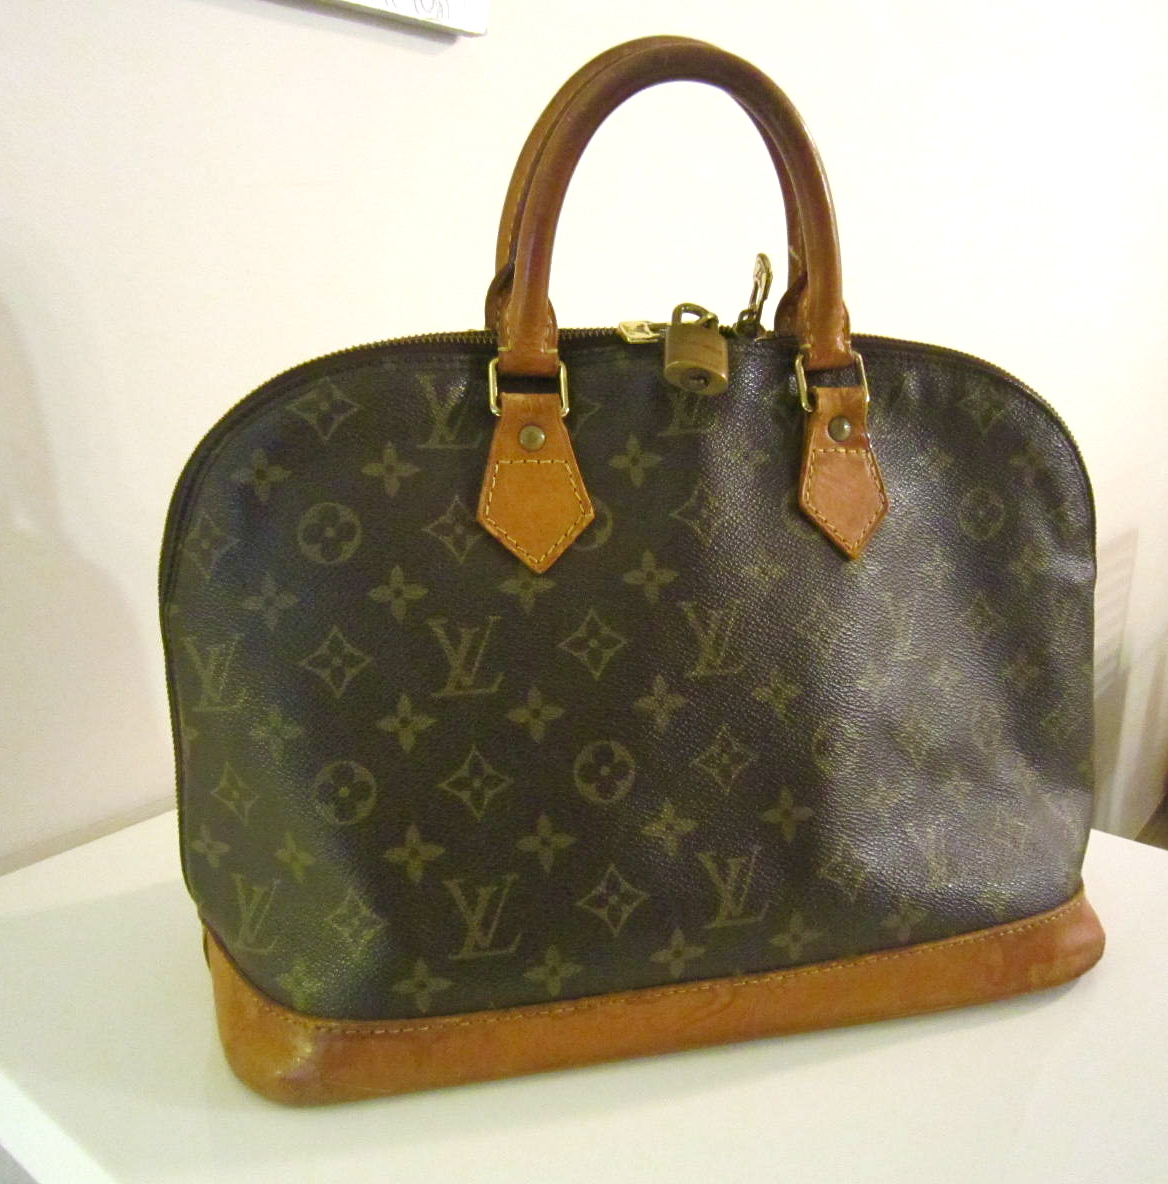 5d17212bf8cc Louis Vuitton Vintage Monogram Alma Handbag - Luxurylana Boutique